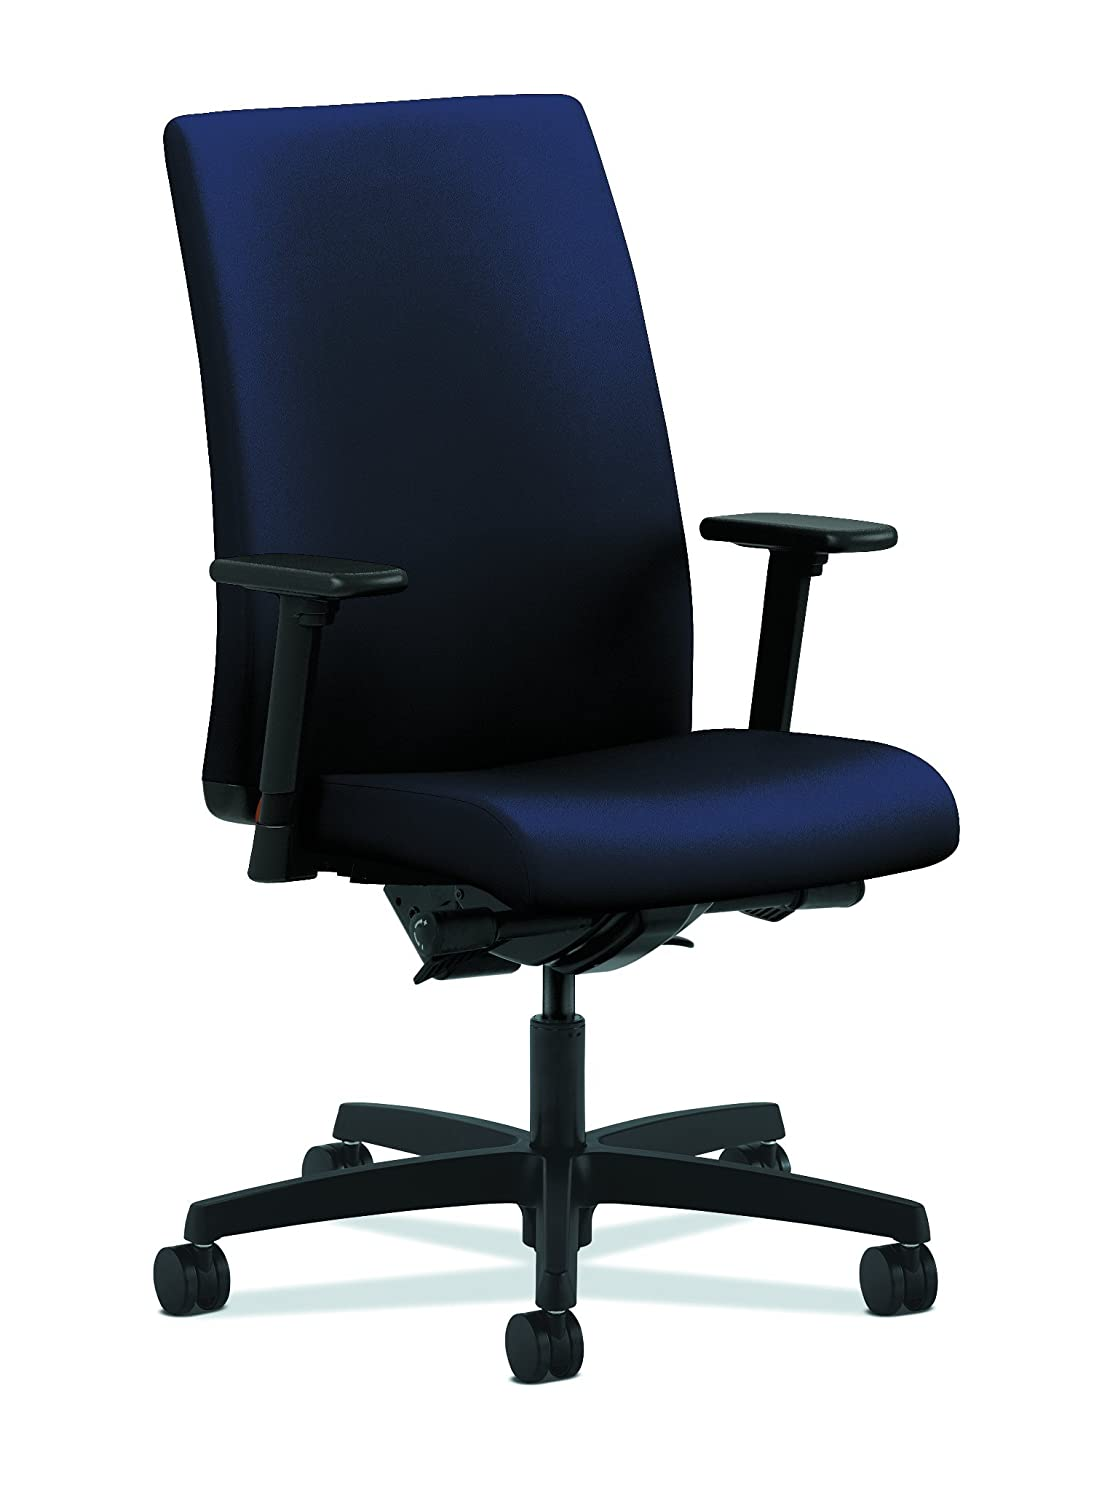 HON Ignition Series Mid-Back Work Chair - Mesh Computer Chair for Office Desk, Navy (HIWM2) HONIW103CU98